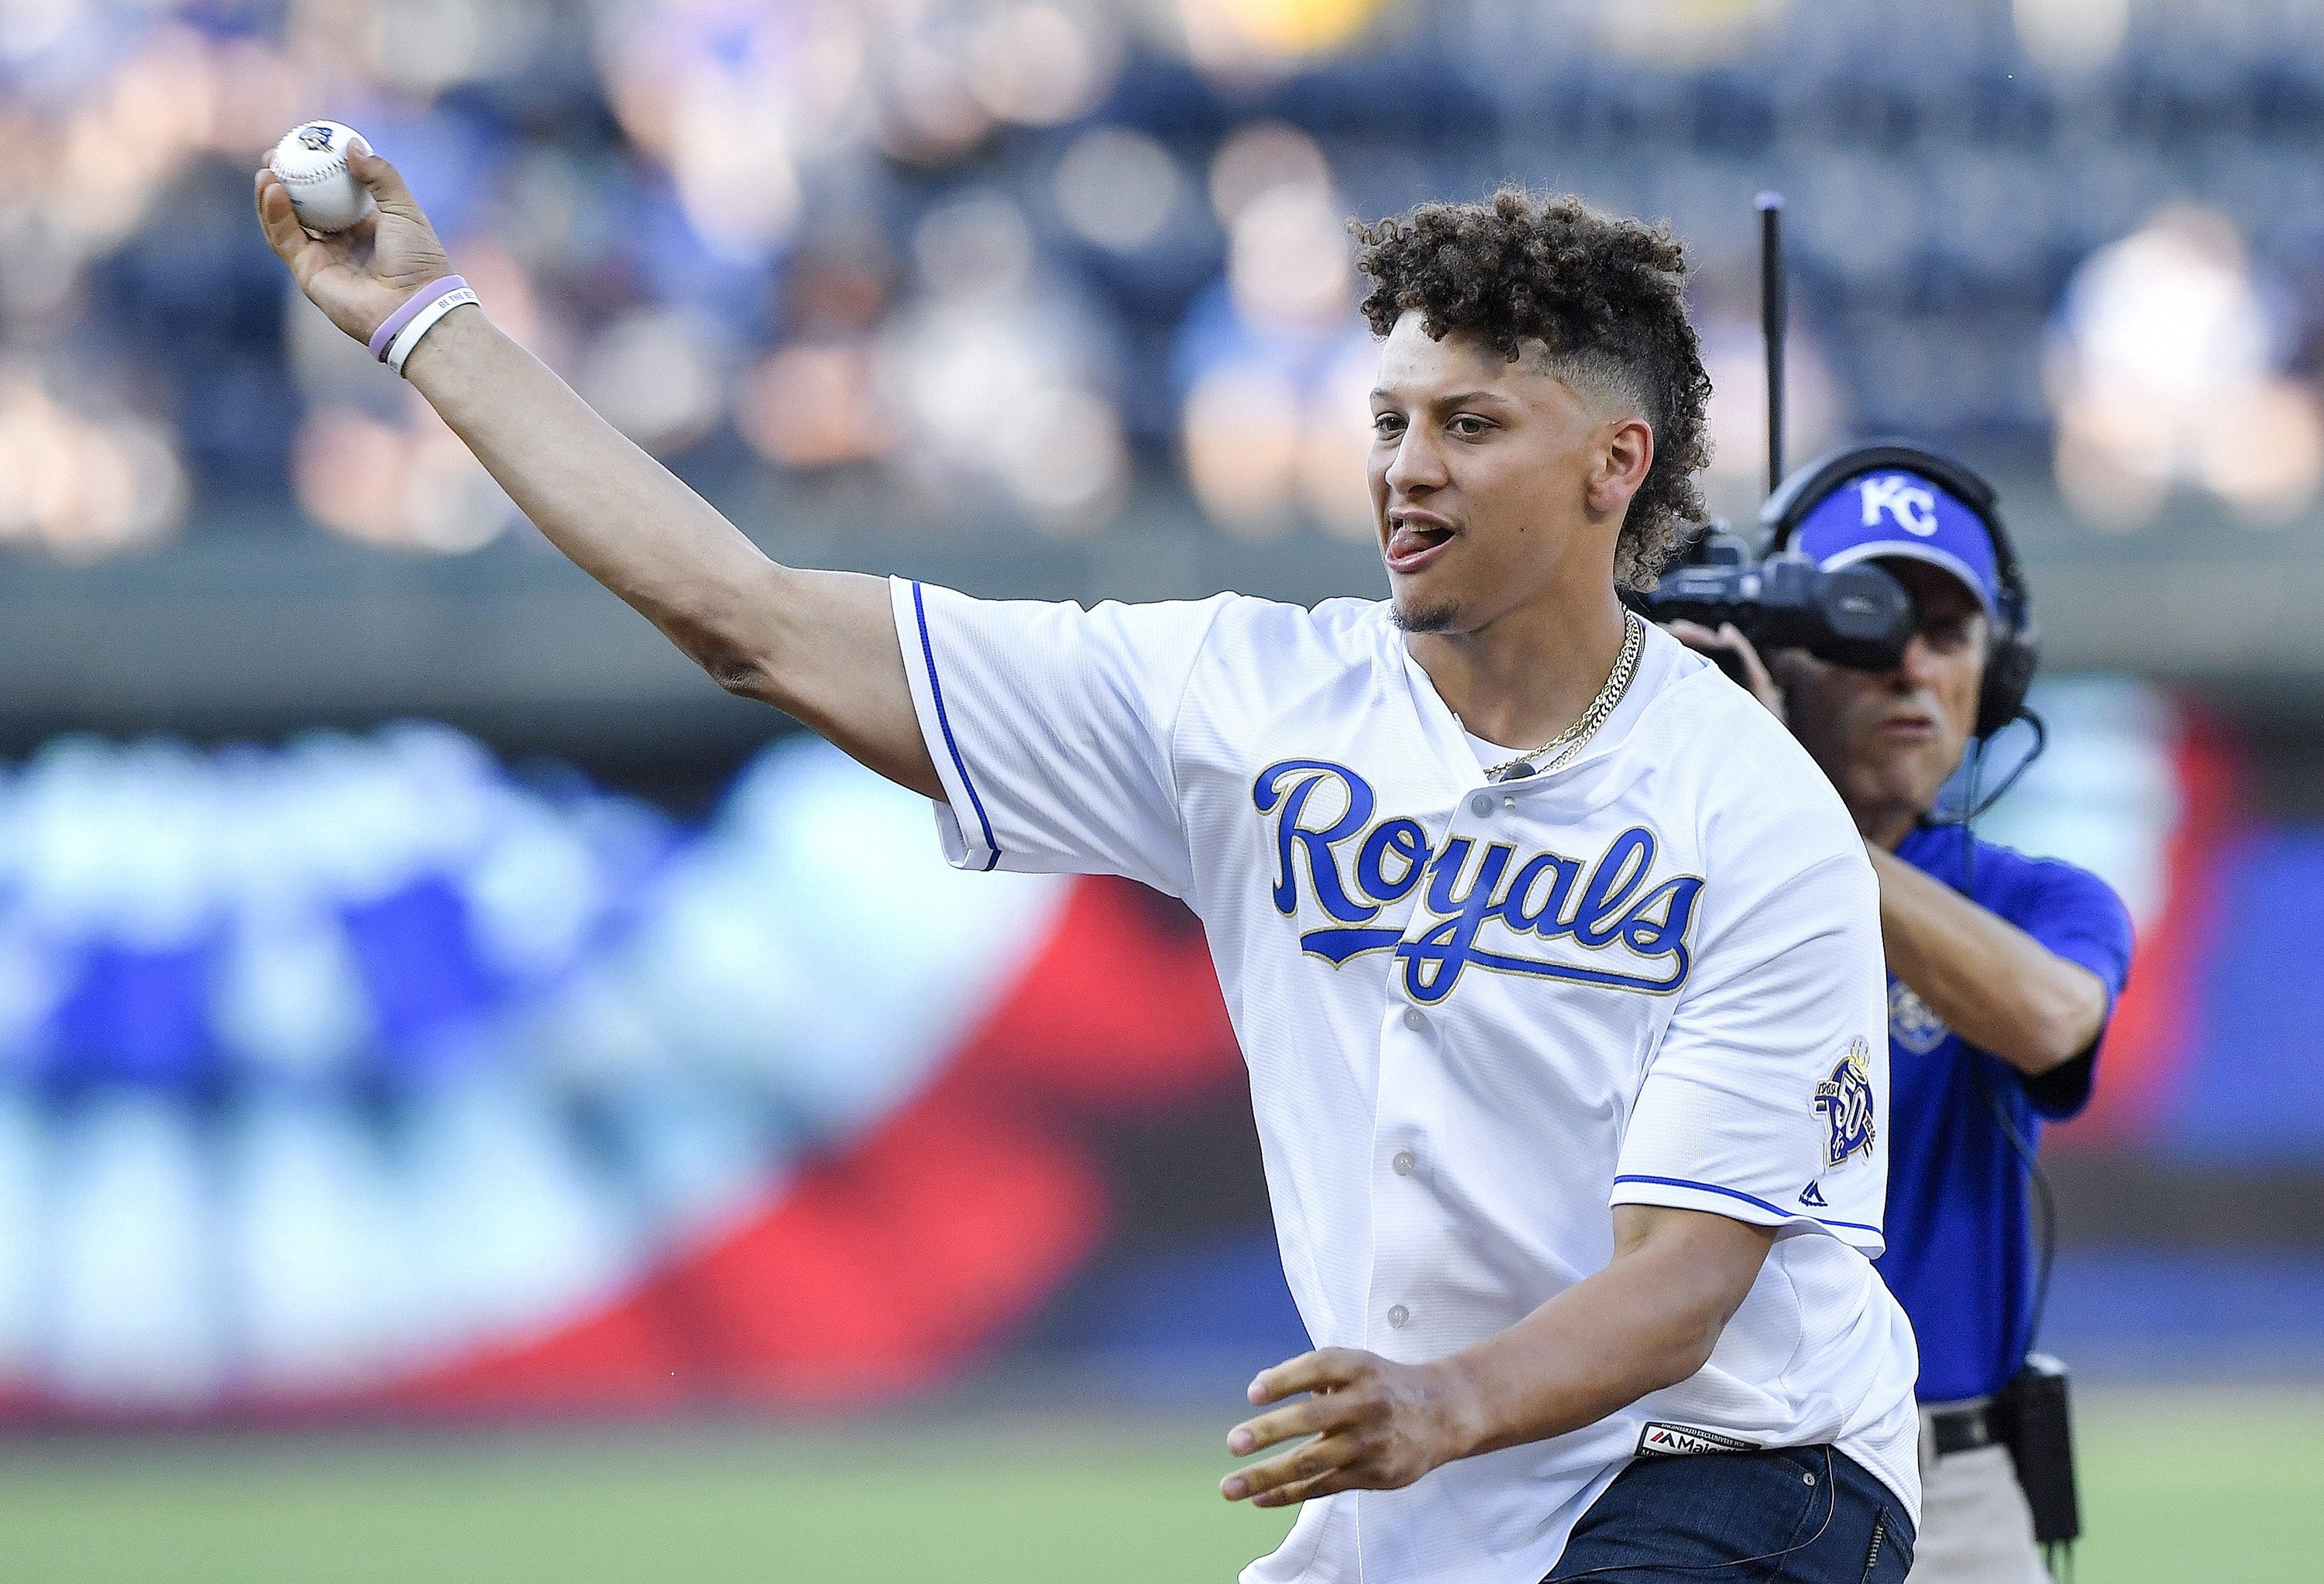 Mahomes Mania in Kansas City reaches another tier as he joins Royals ownership group